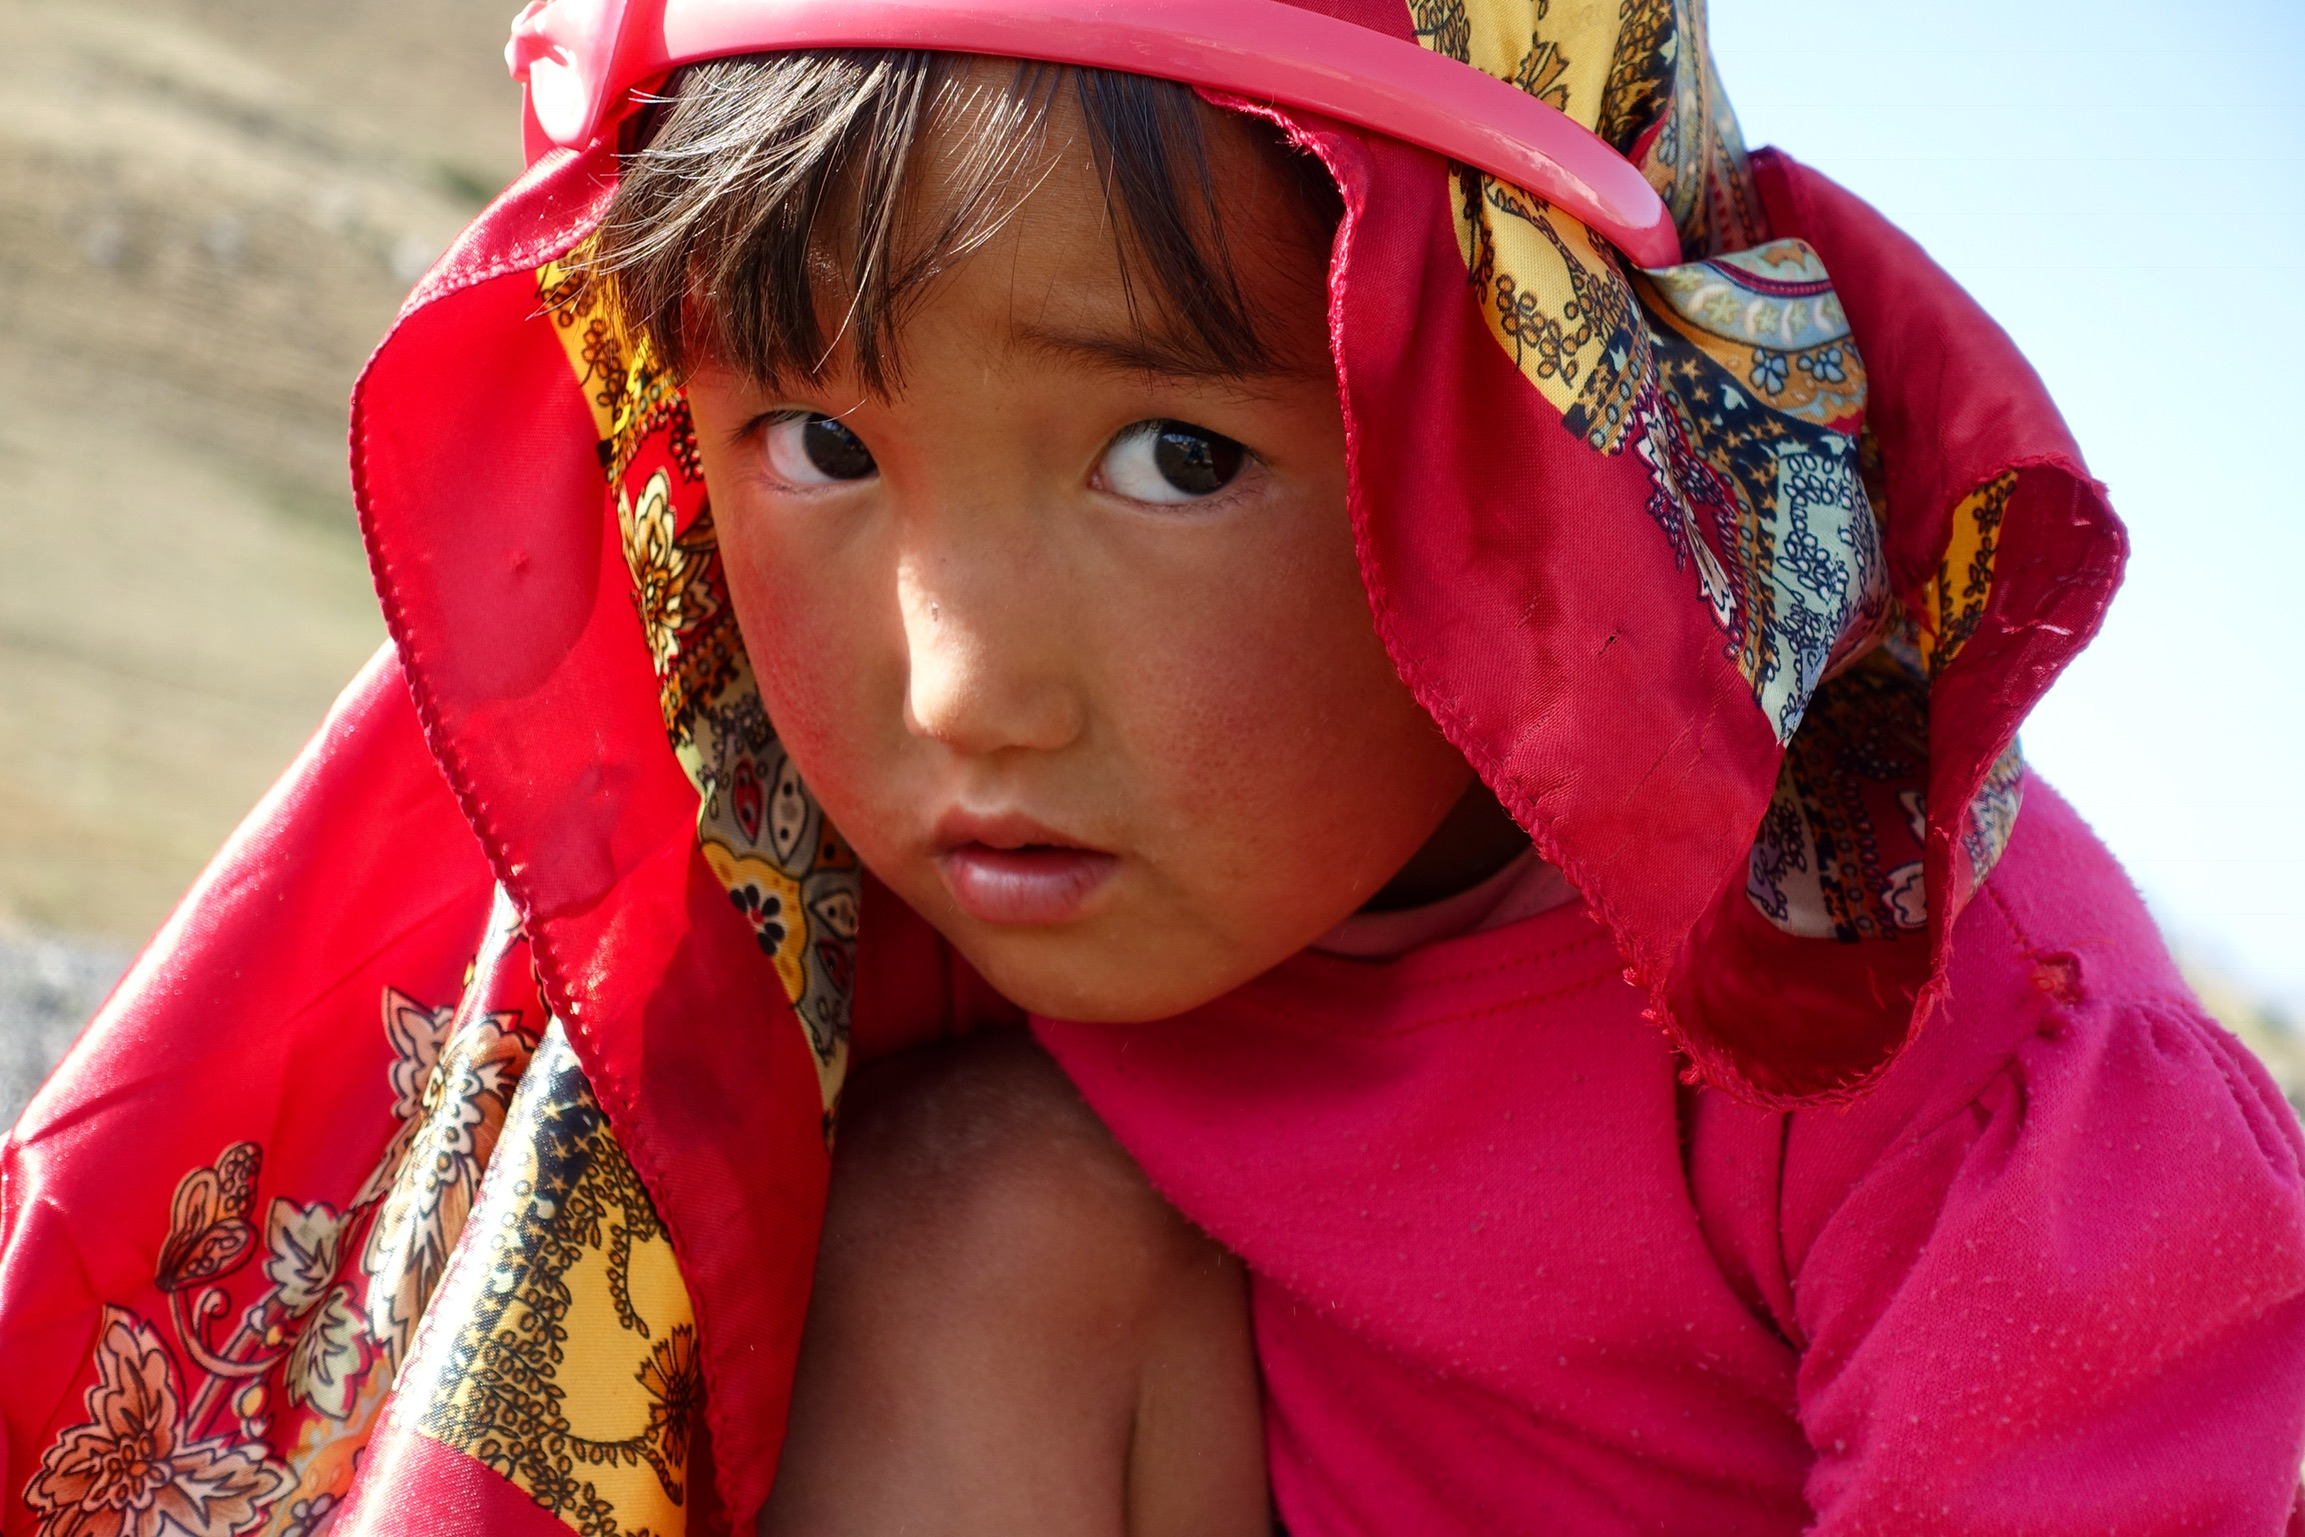 Shy little girl on the way to Sary Tash